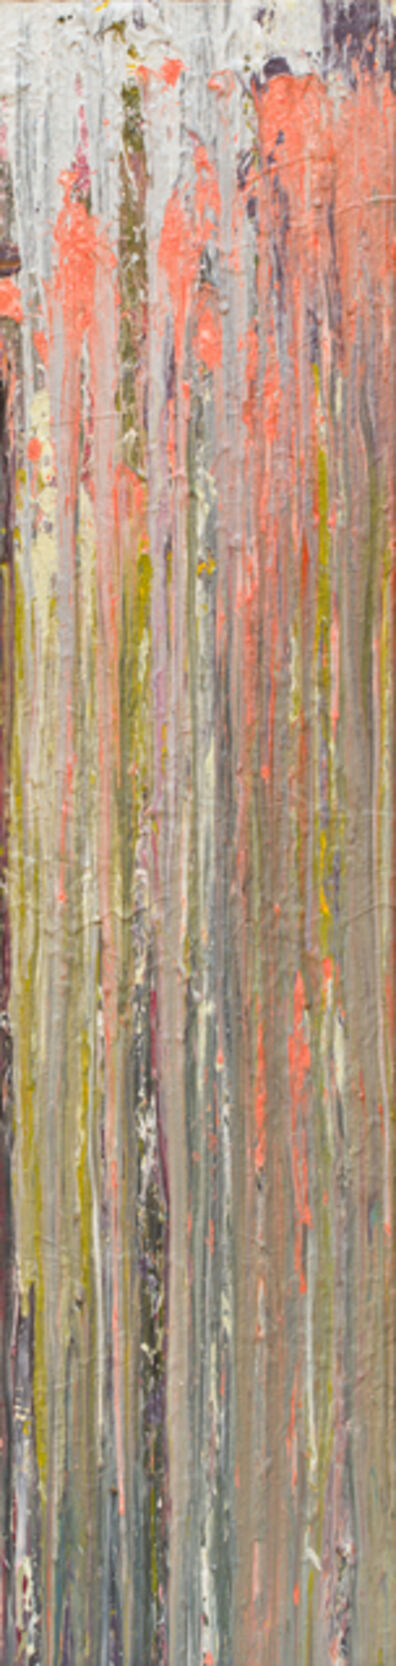 Larry Poons, 'Untitled (81B-1)', 1981